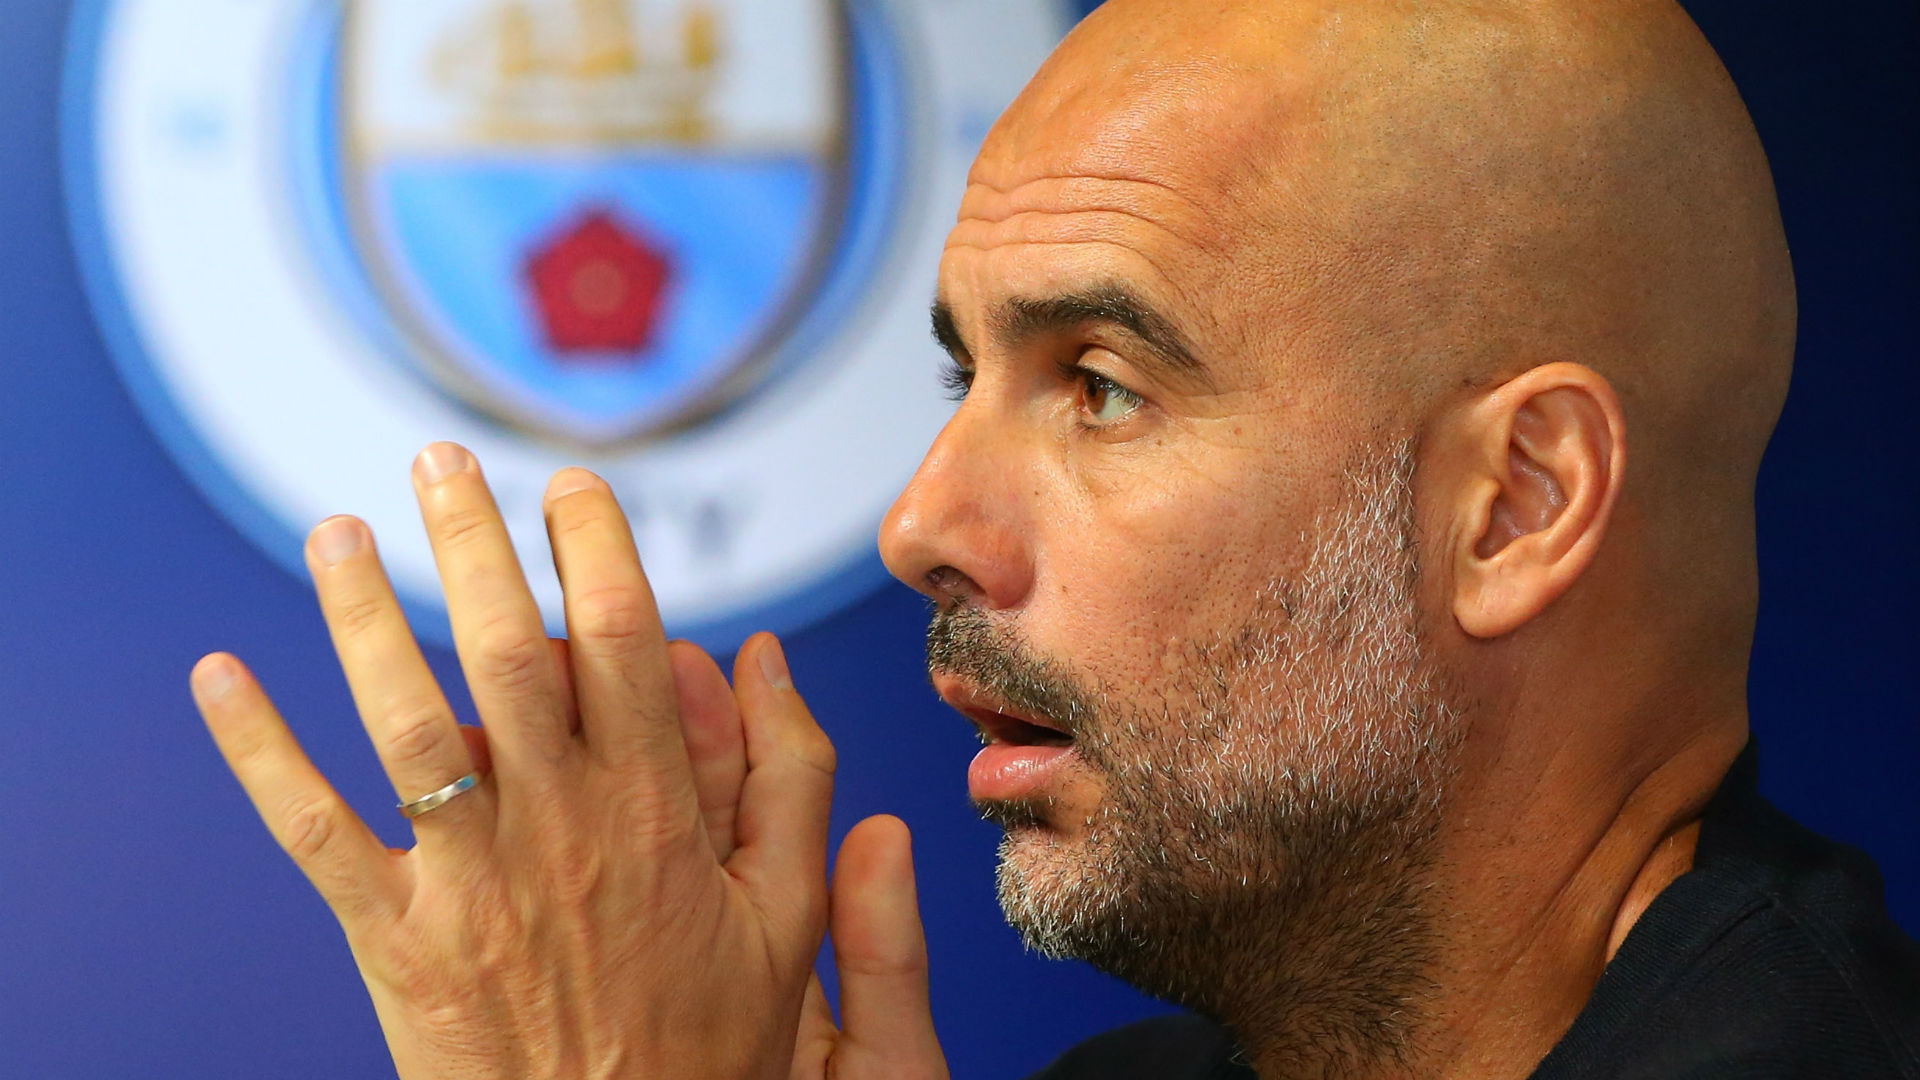 The club want to follow UEFA rules, says Pep Guardiola